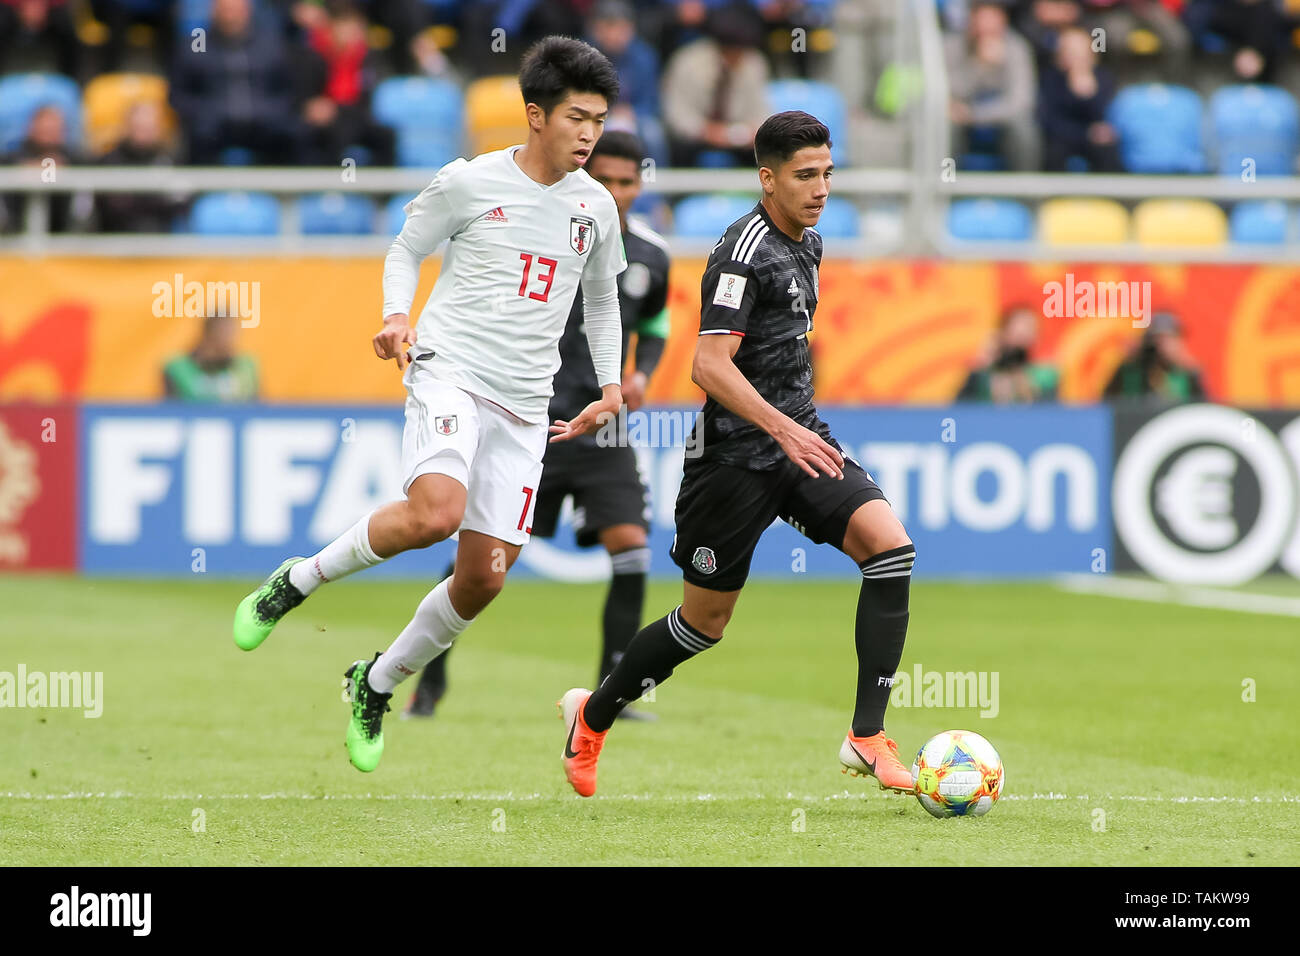 Gdynia Stadium, Gdynia, Poland - 26th May, 2019: Taisei Miyashiro(L) from Japan and Kevin Alvarez (R) from Mexico are seen in action during FIFA U-20 World Cup match between Mexico and Japan (GROUP B) in Gdynia. (Final score; Mexico 0:3 Japan) - Stock Image